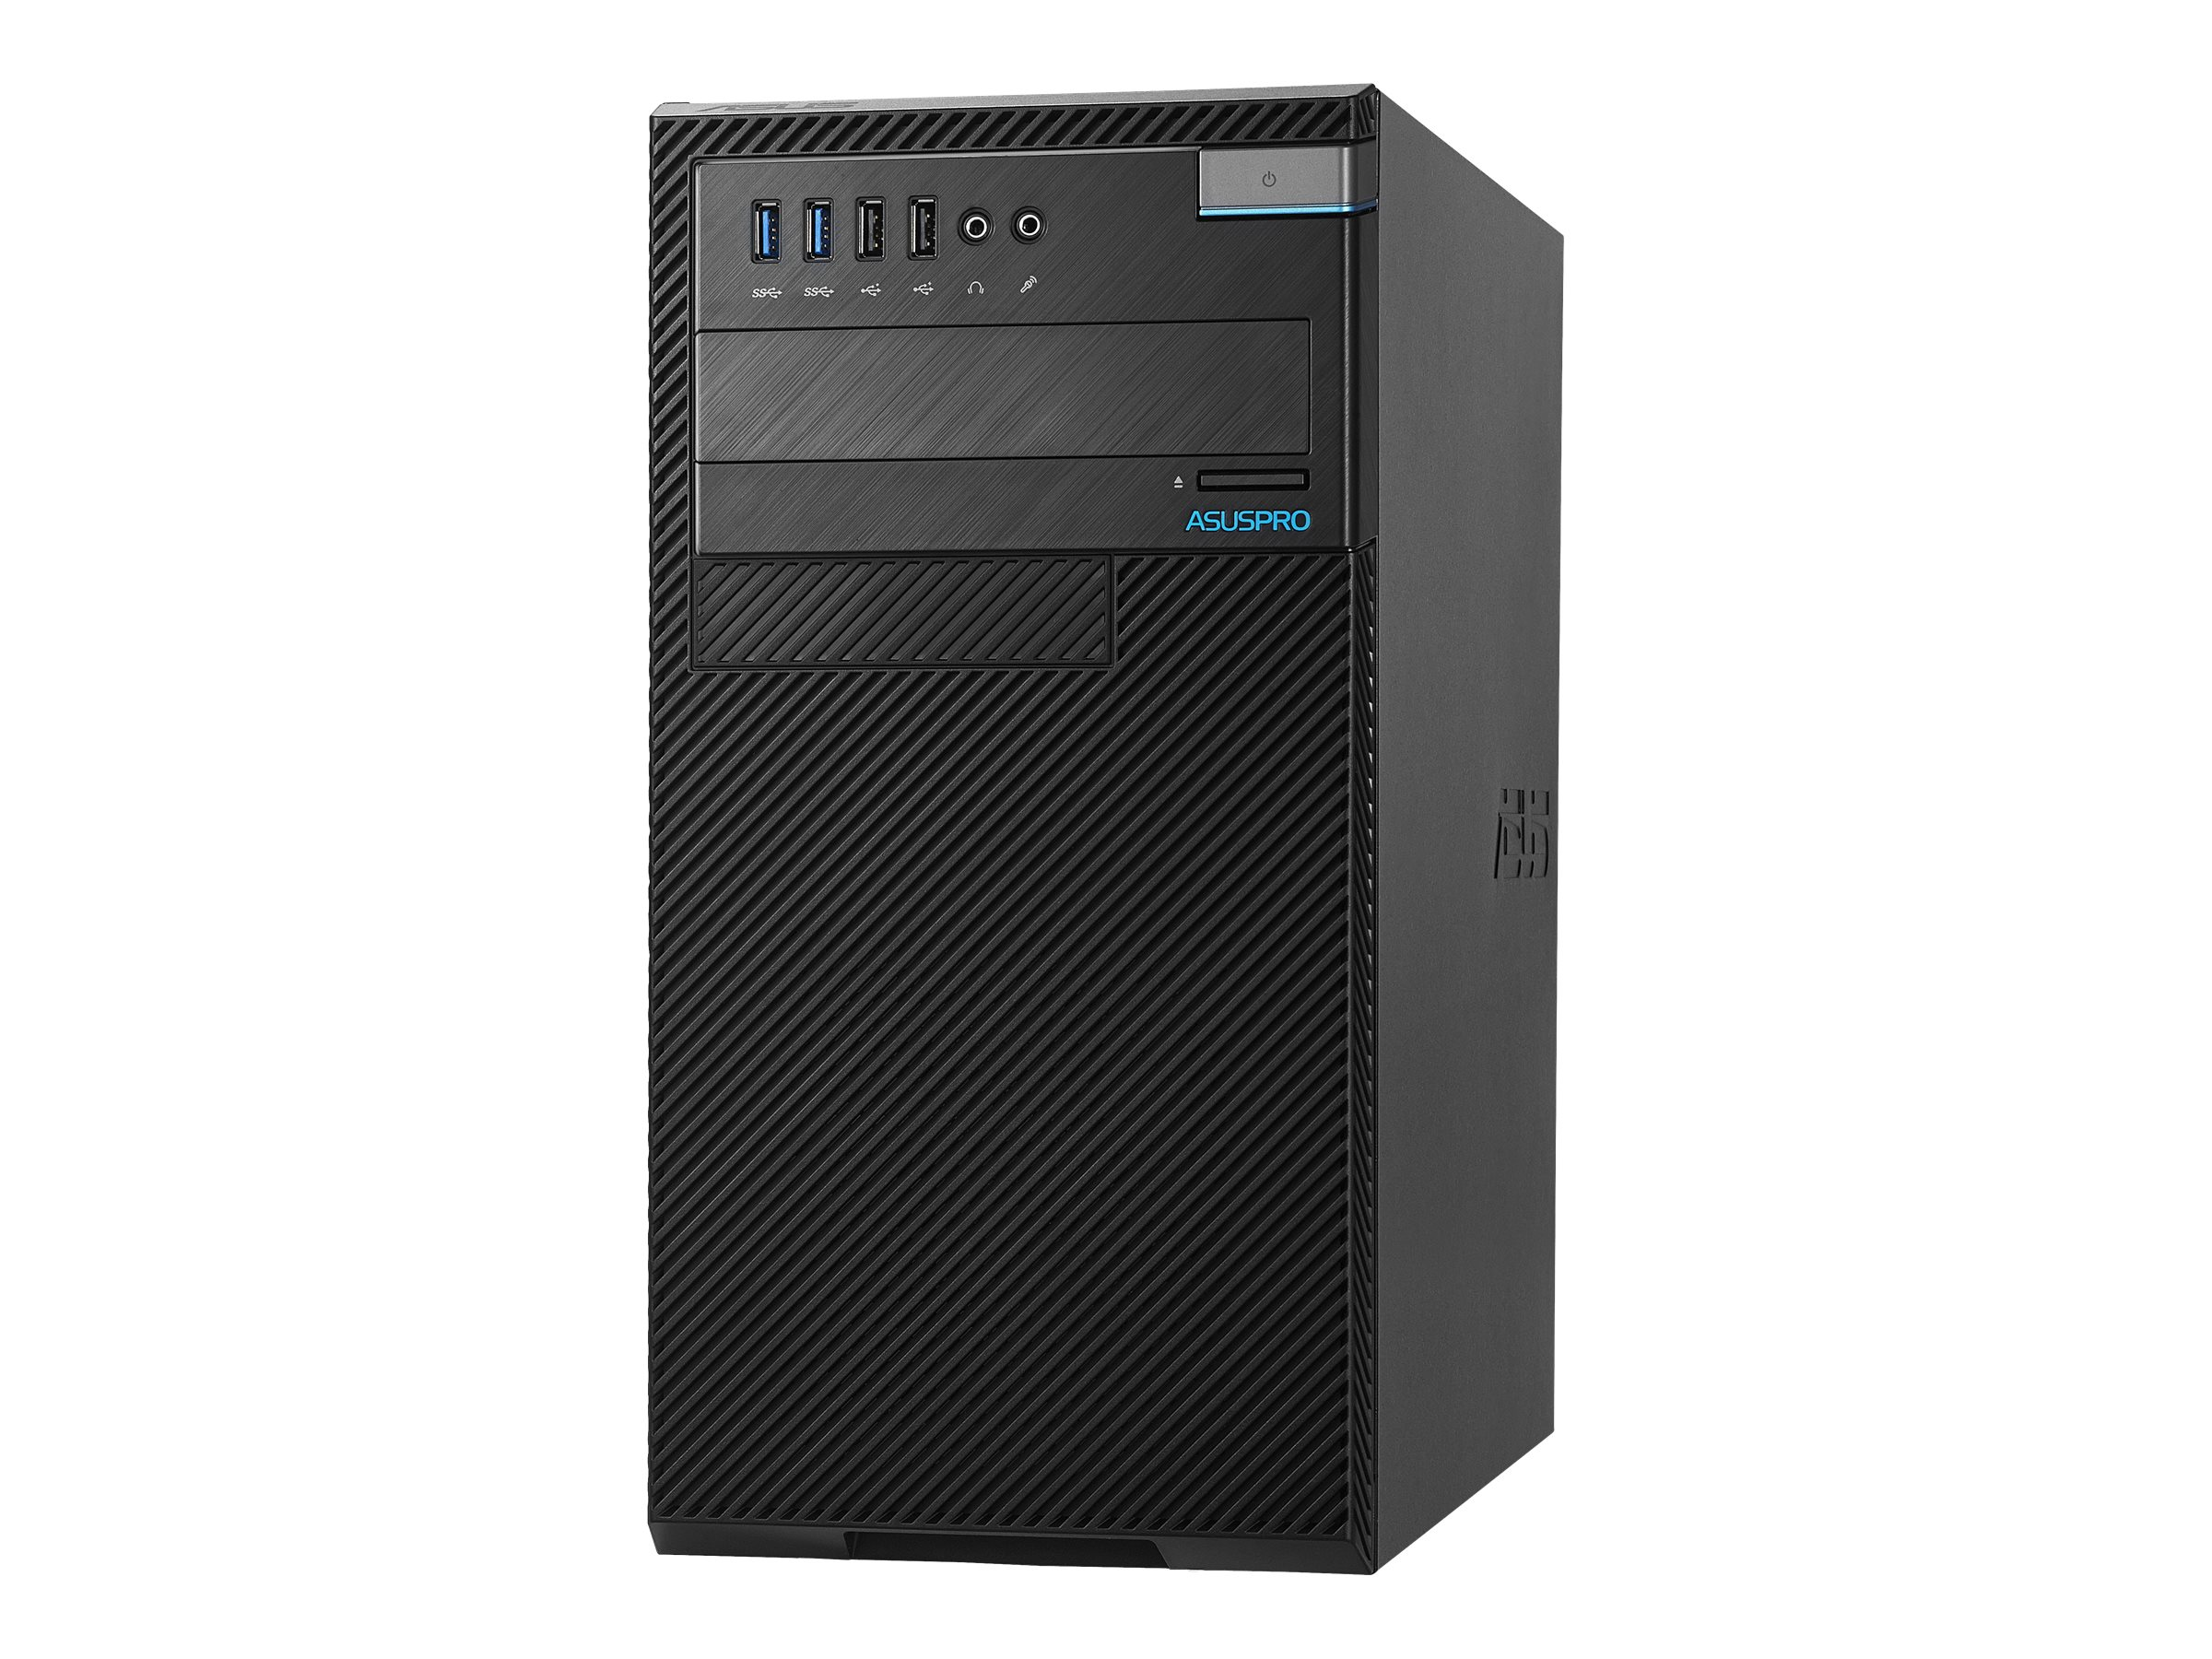 Asus D510MT Mini Tower Desktop Core i7-4790 1TB, D510MT-I747900014, 30940562, Desktops